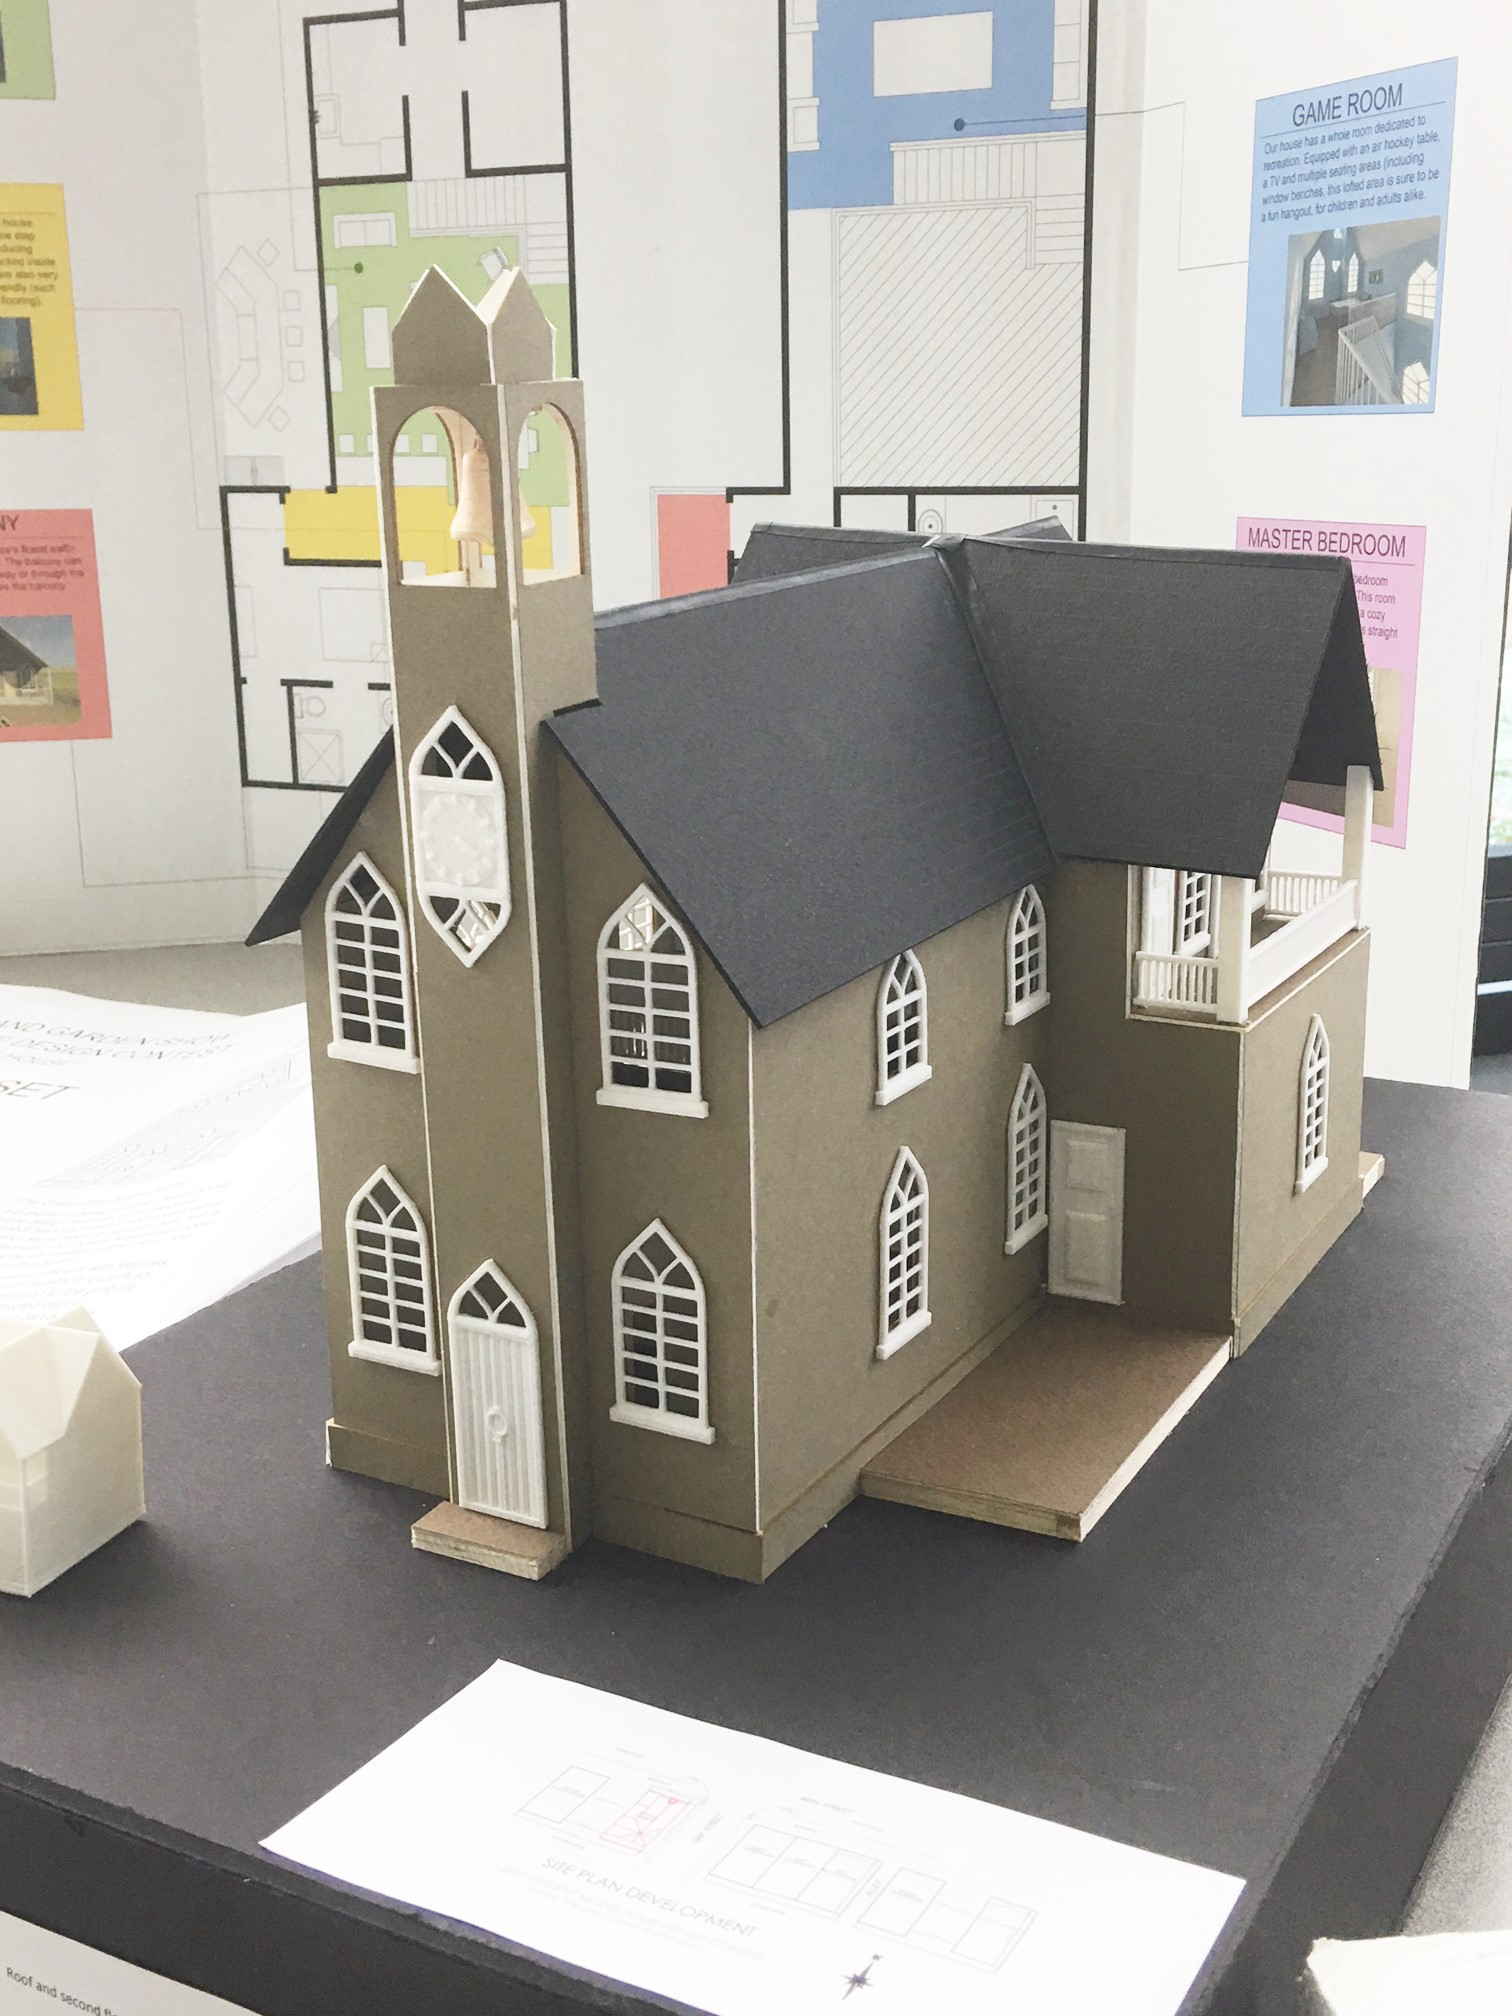 2017 Student Model Home Design Contest - model of first place team